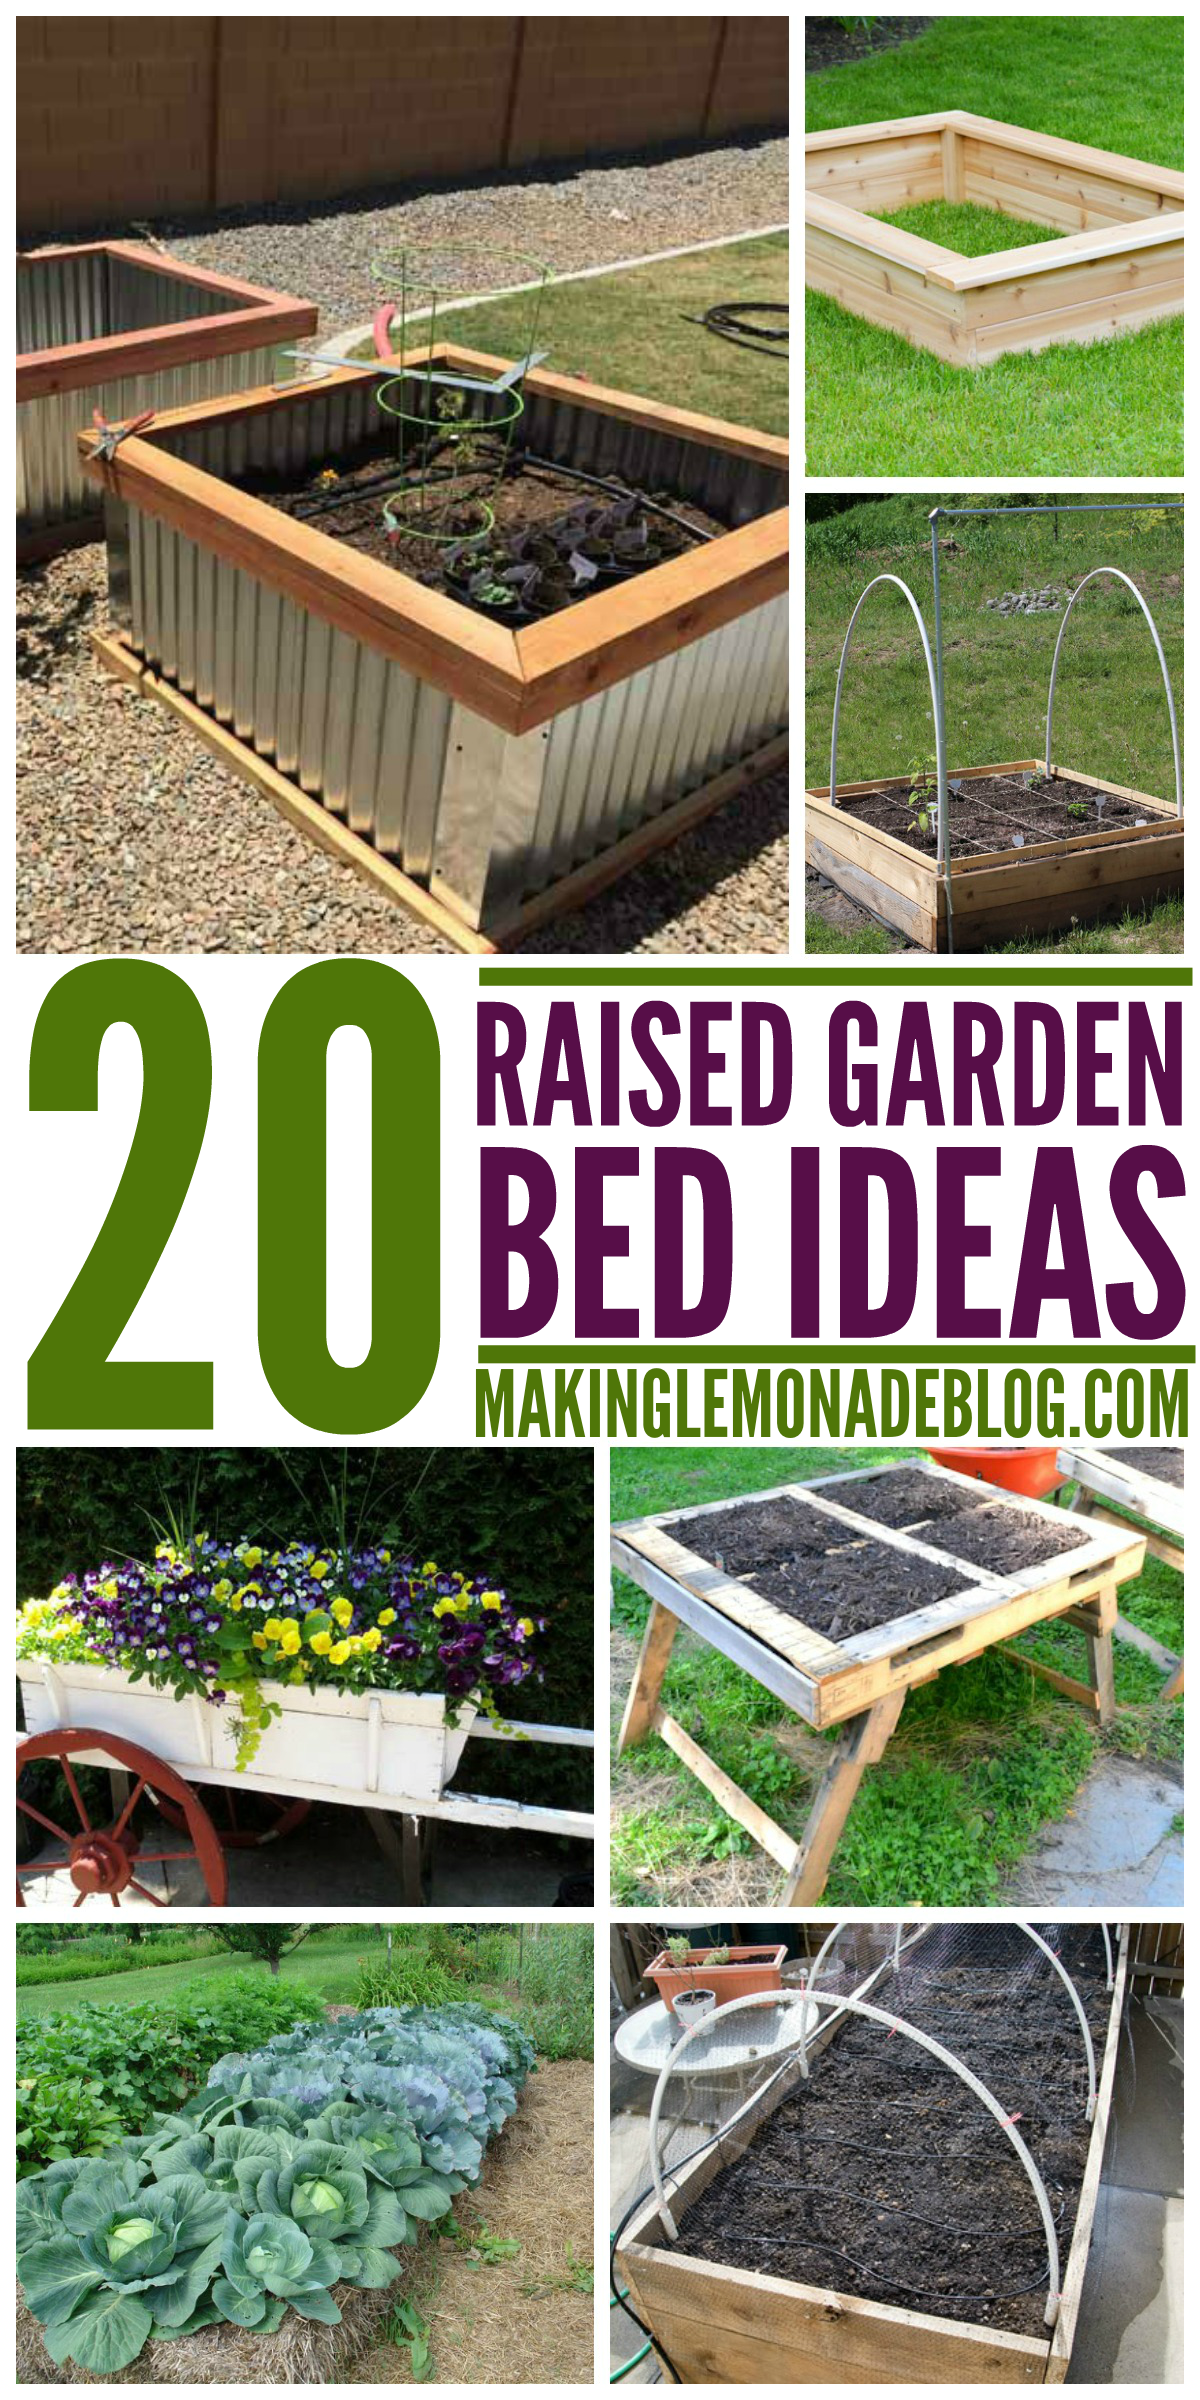 20 Brilliant Raised Garden Bed Ideas You Can Make In A ... on raised garden layout plans, raised bed designs, raised garden plans designs, simple raised garden plans, raised vegetable garden design ideas, container flower garden plans, raised garden layout ideas, raised garden border ideas,